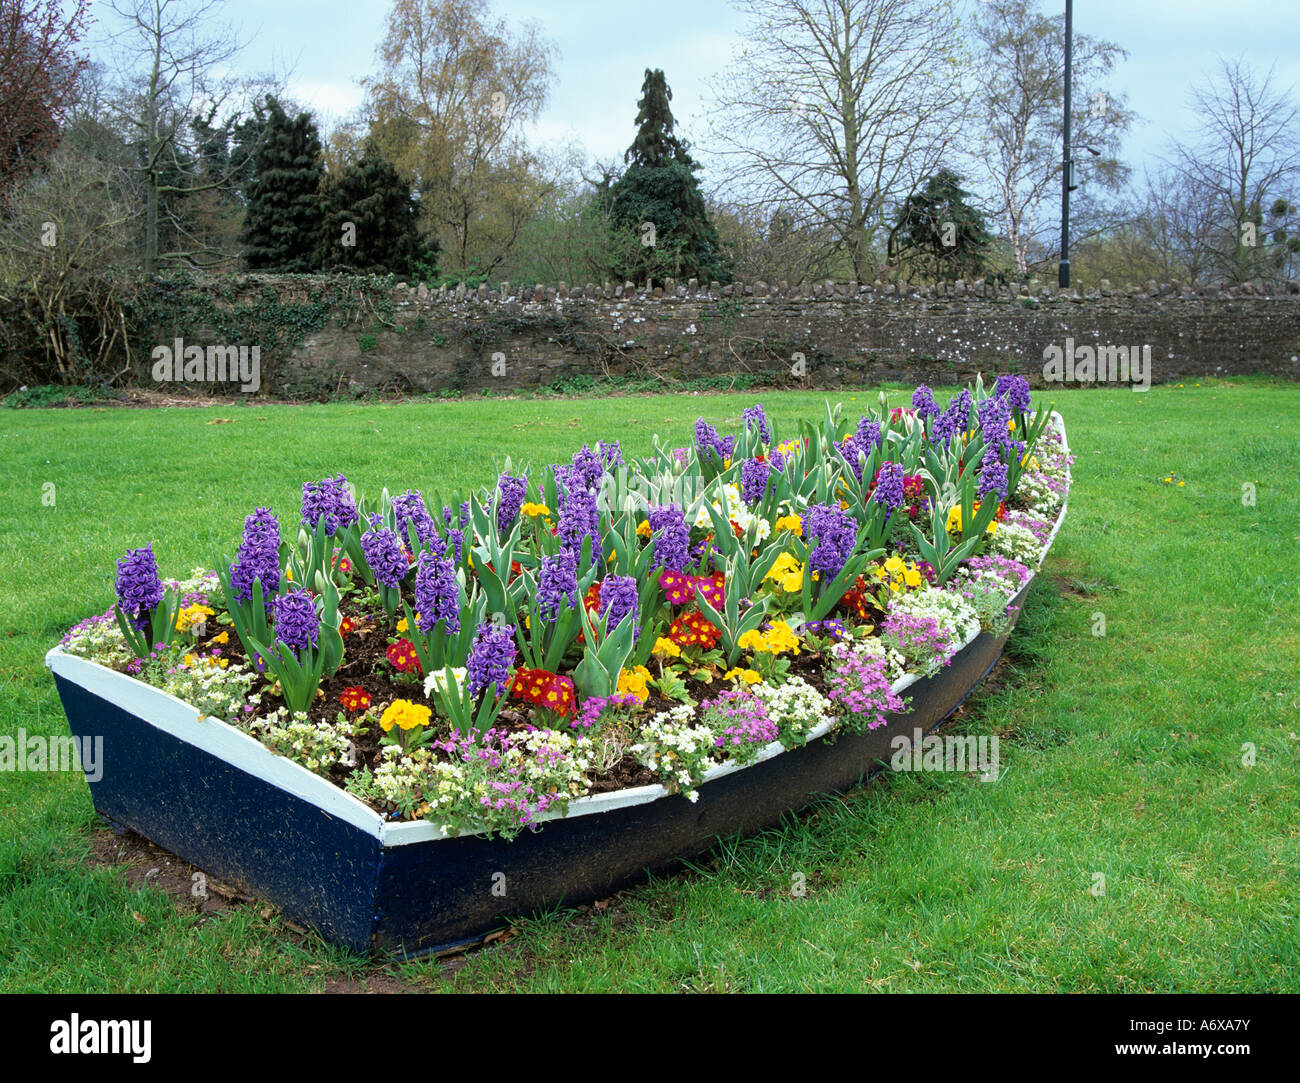 garden planters belfast with Stock Photo Uk April A Blue Rowing Boat Used As A Flower Planter 11663102 on The Upcycled Garden Spring 2013 additionally Stock Photo Uk April A Blue Rowing Boat Used As A Flower Planter 11663102 as well Small Courtyard Garden Ideas Small Enclosed Courtyard Garden Small Courtyard Garden Uk further Courtyard garden additionally Garden Log Planter Square.